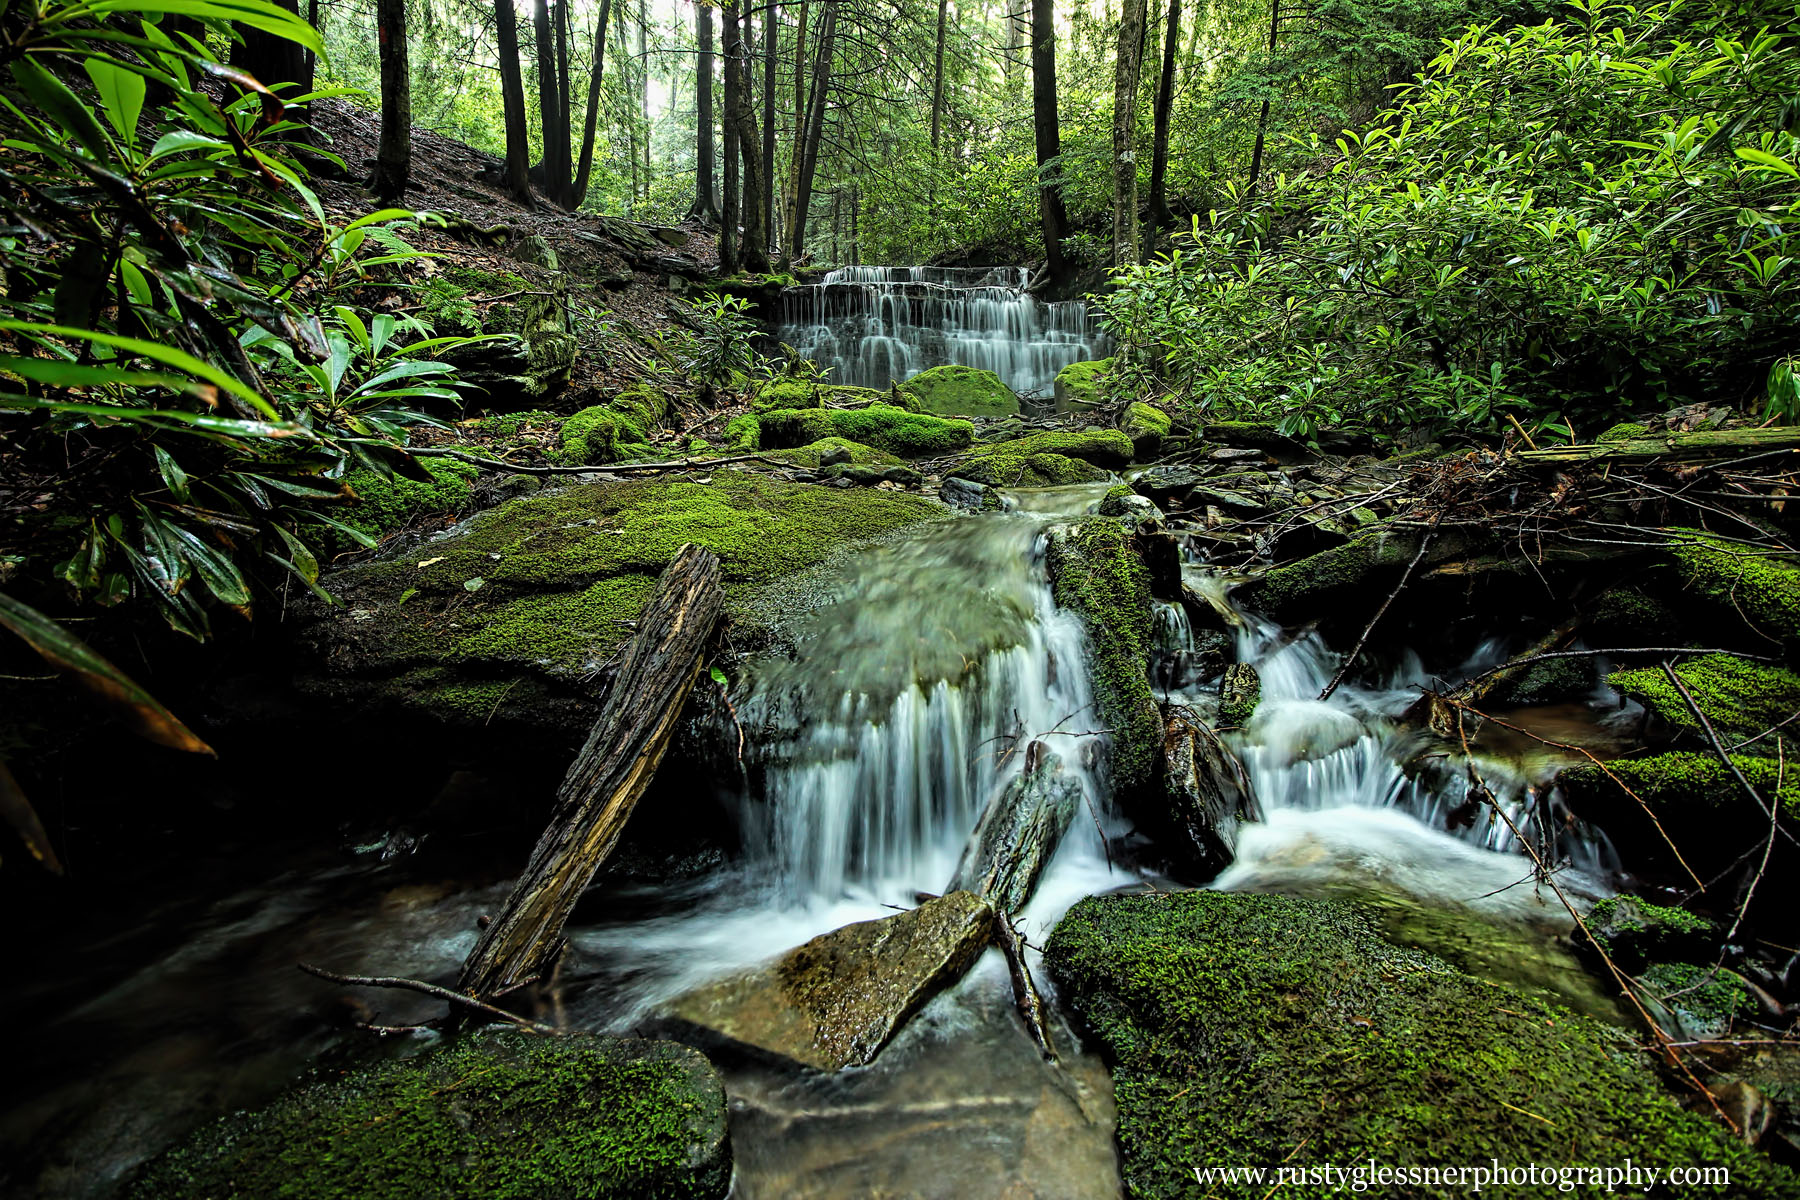 Yost Run Falls, Chuck Keiper Trail, Sproul State Forest, Centre County, Pennsylvania